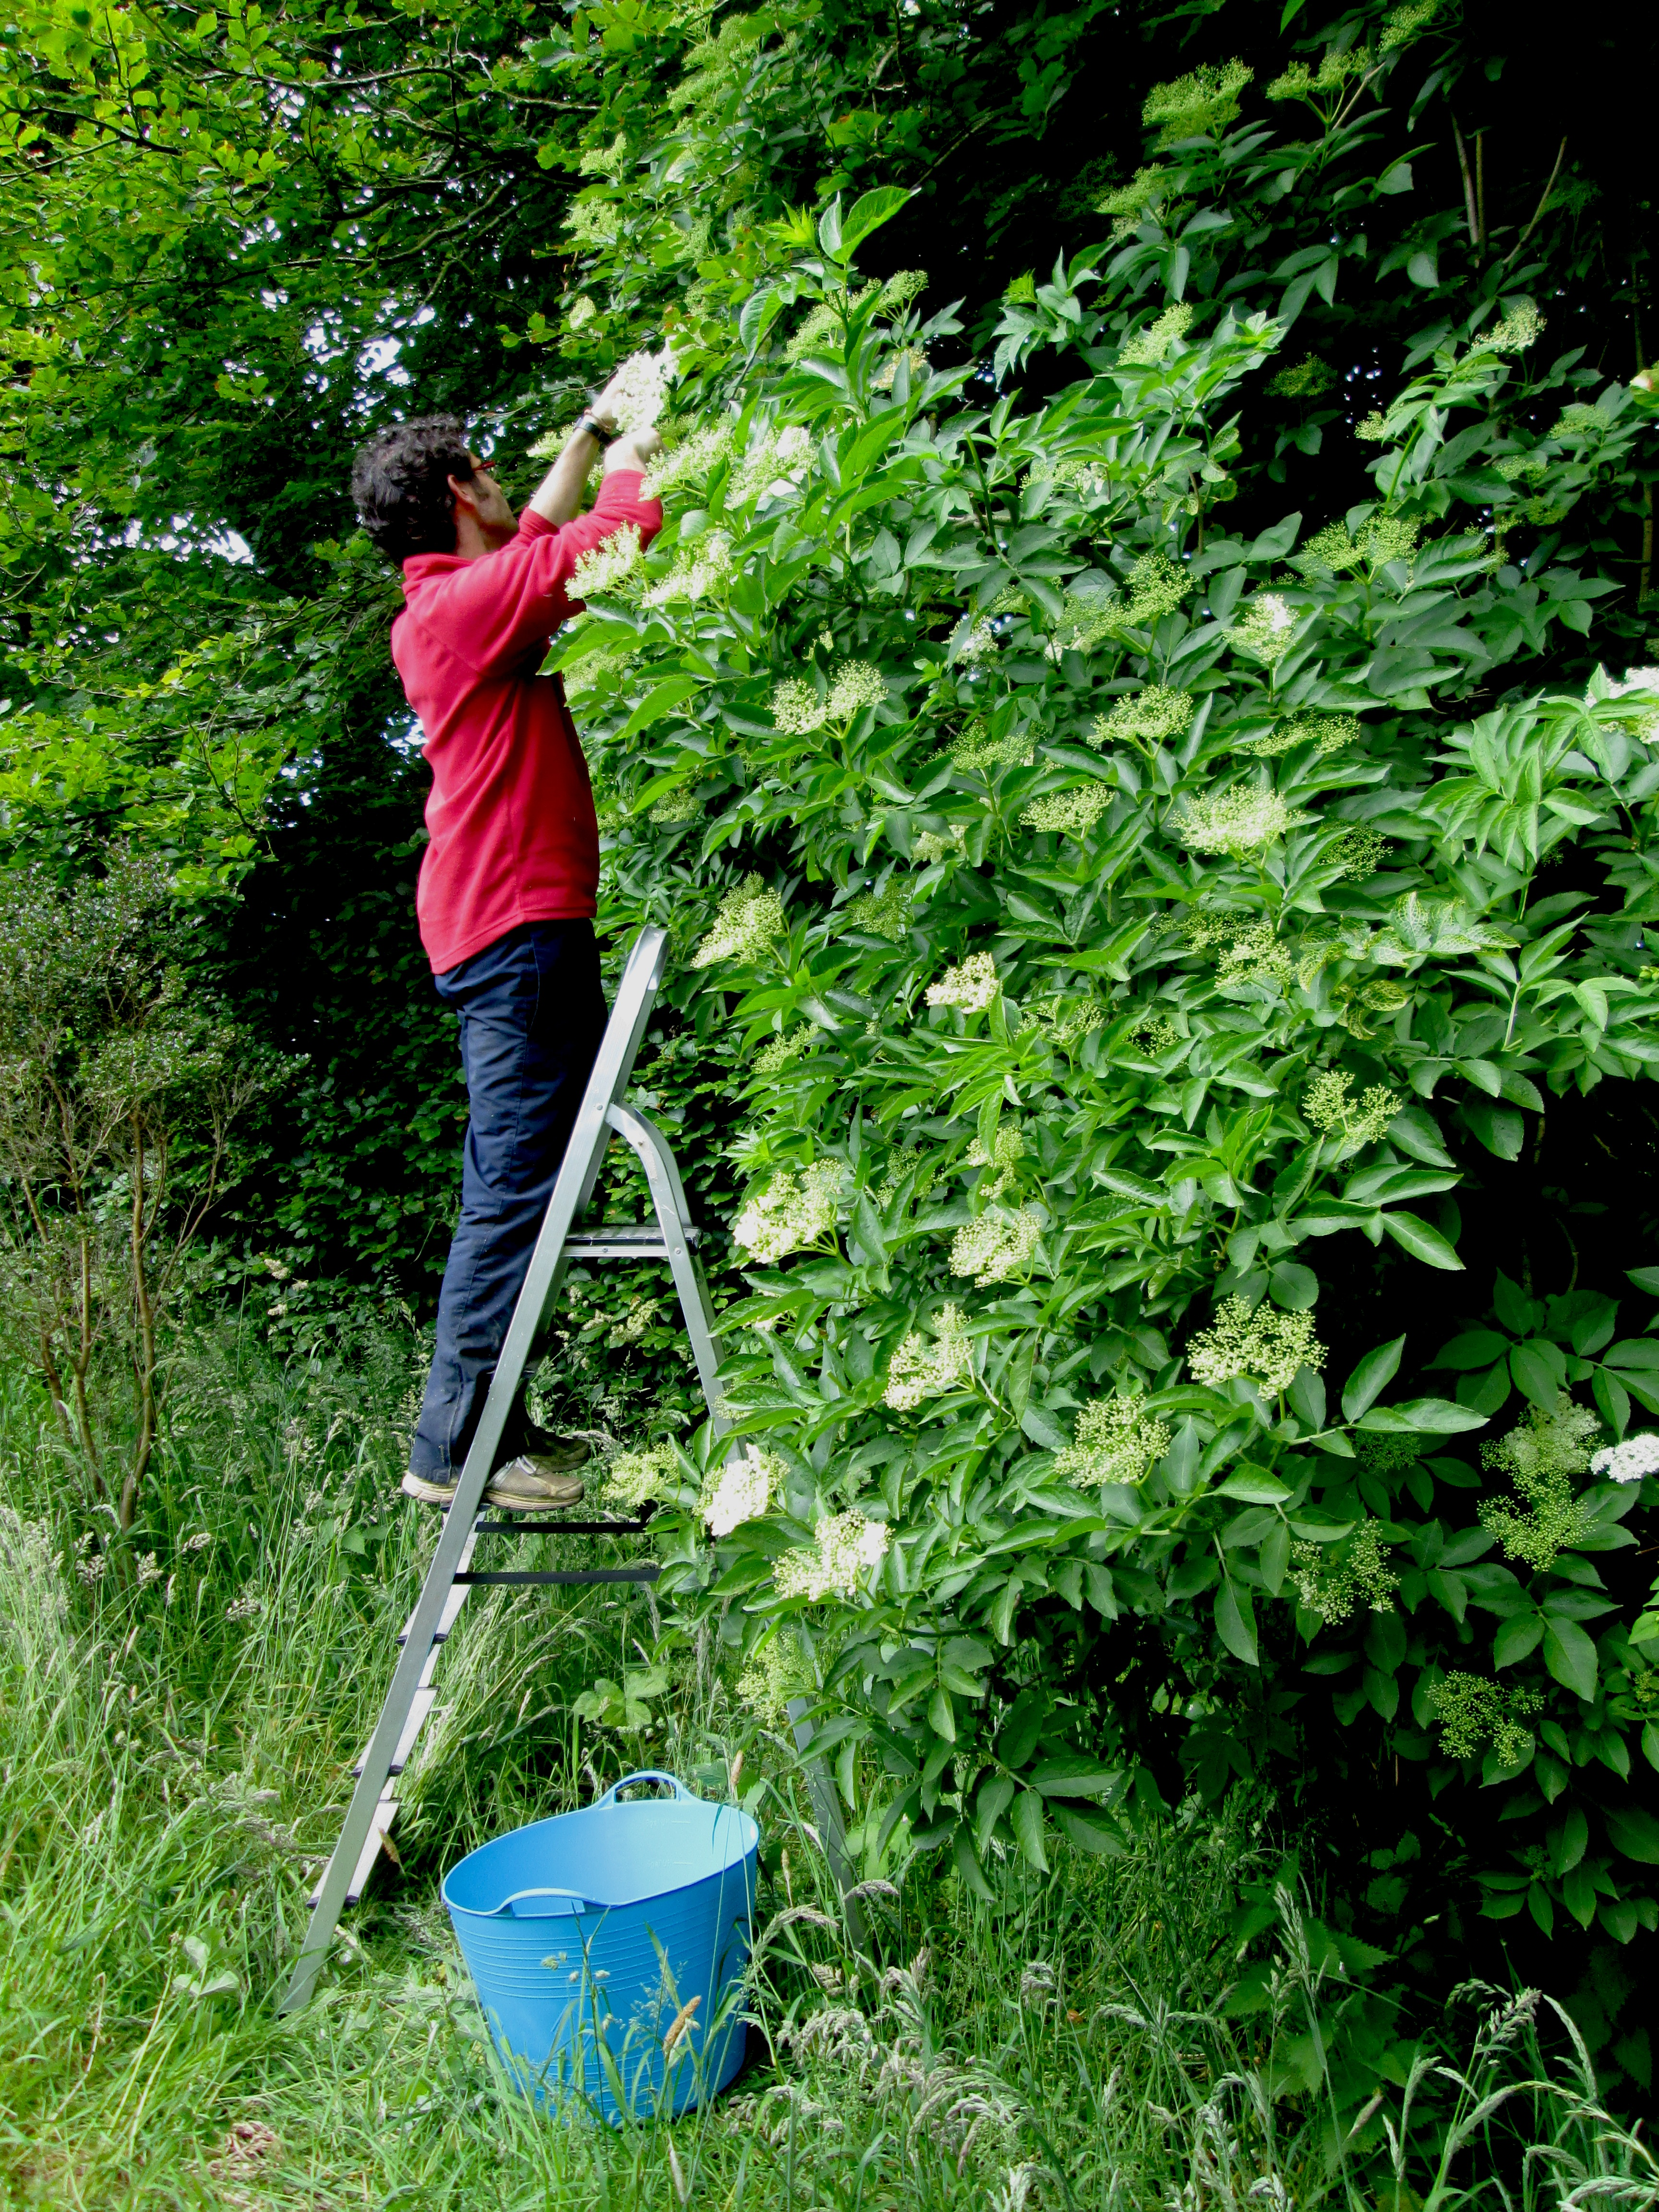 Jose snipping away... getting into the spirit of all things Elderflower!